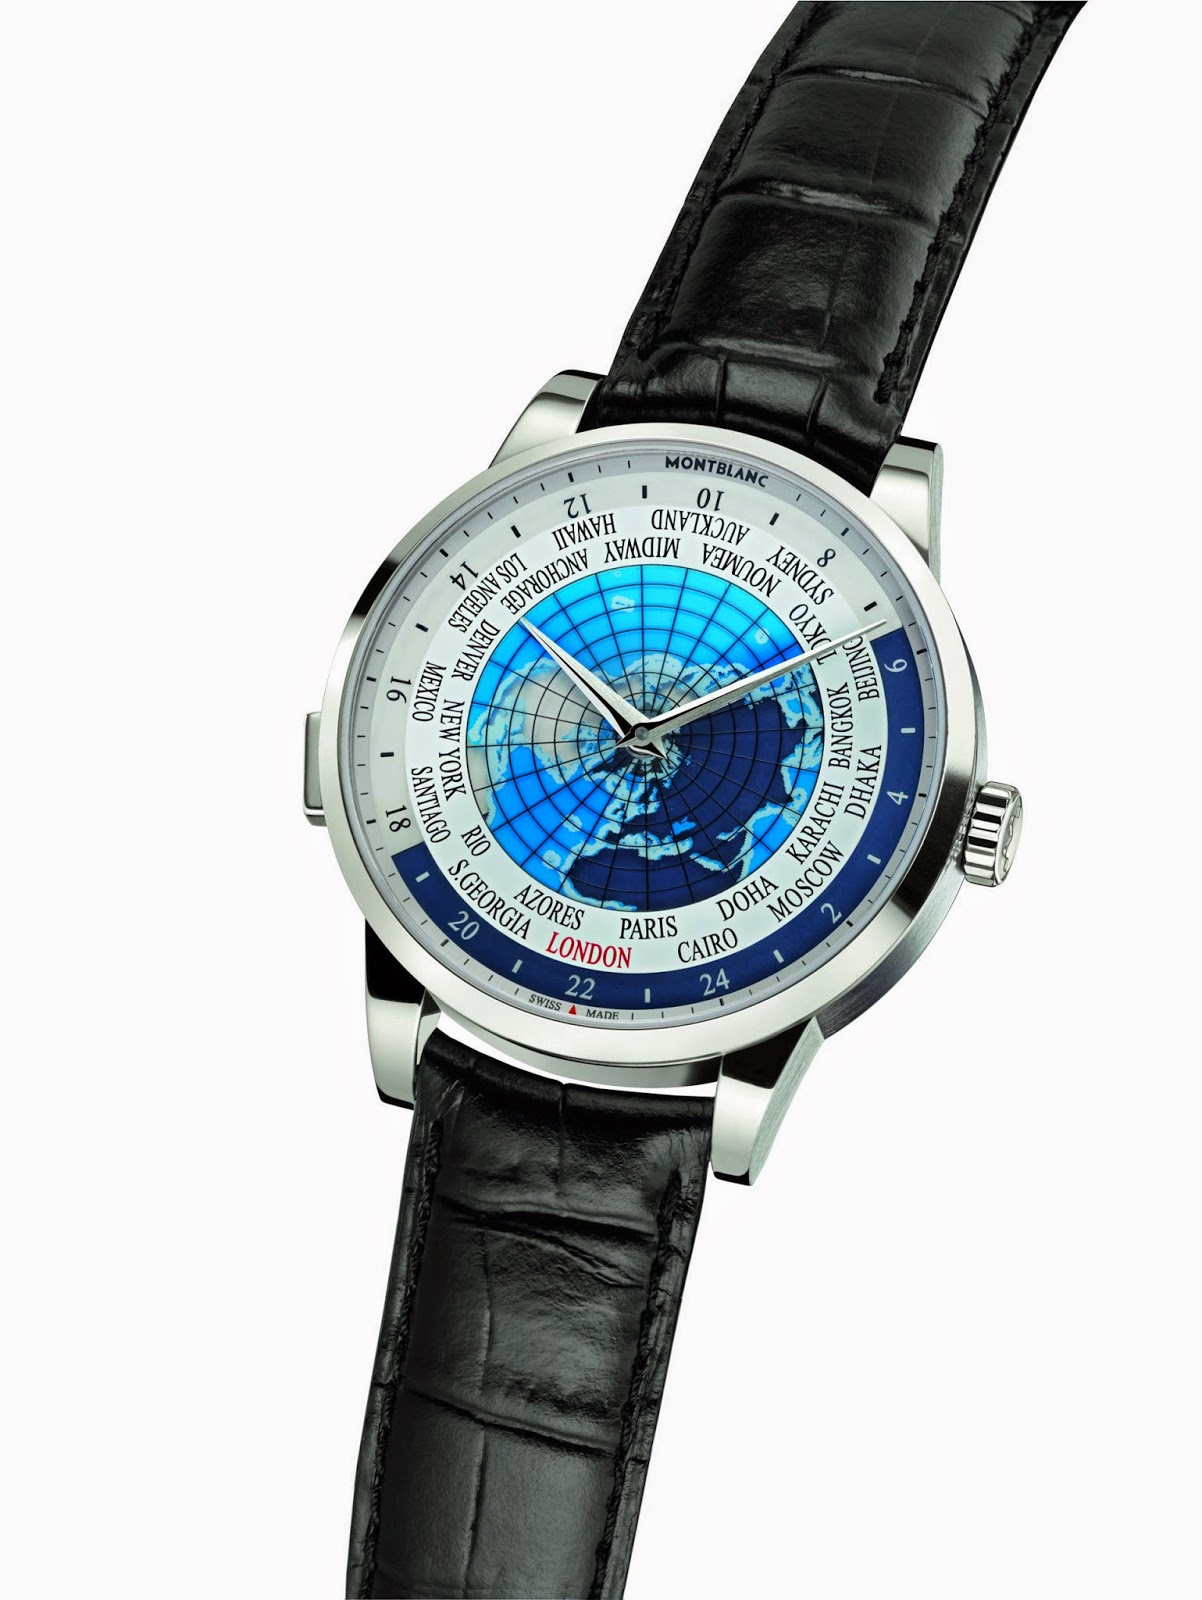 Montblanc Heritage Spirit Orbis Terrarum World watch replica